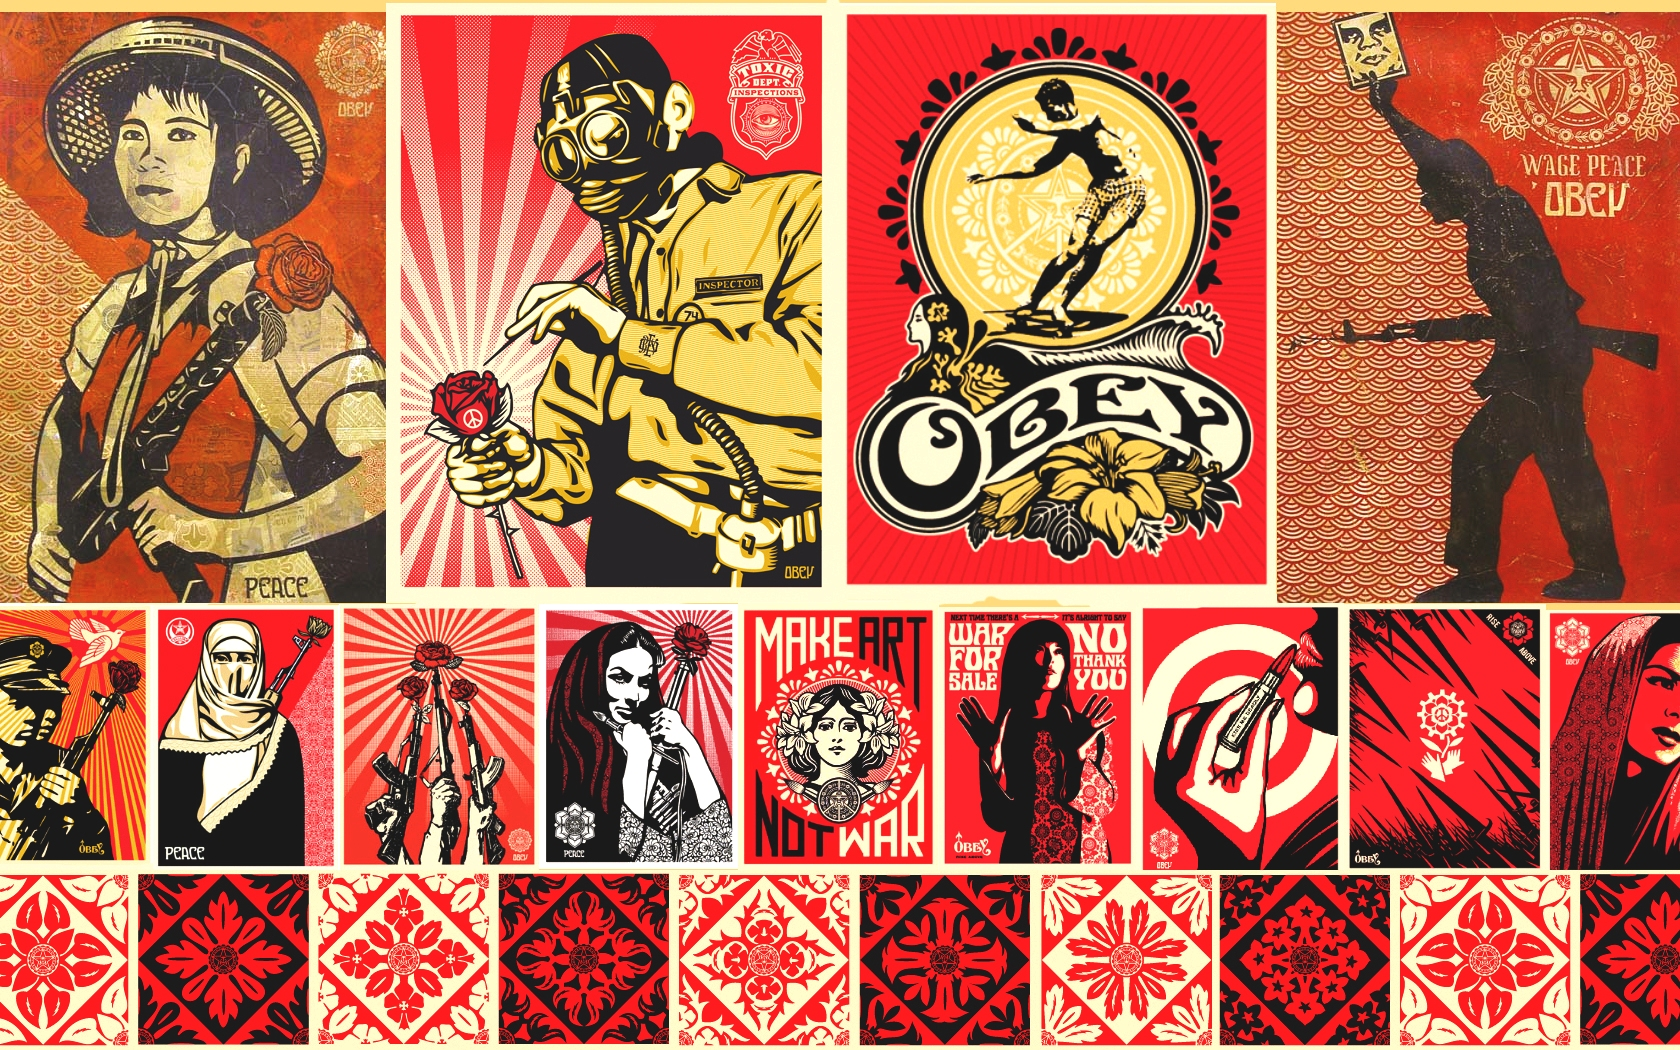 Obey Wallpaper 1680x1050 Obey 1680x1050